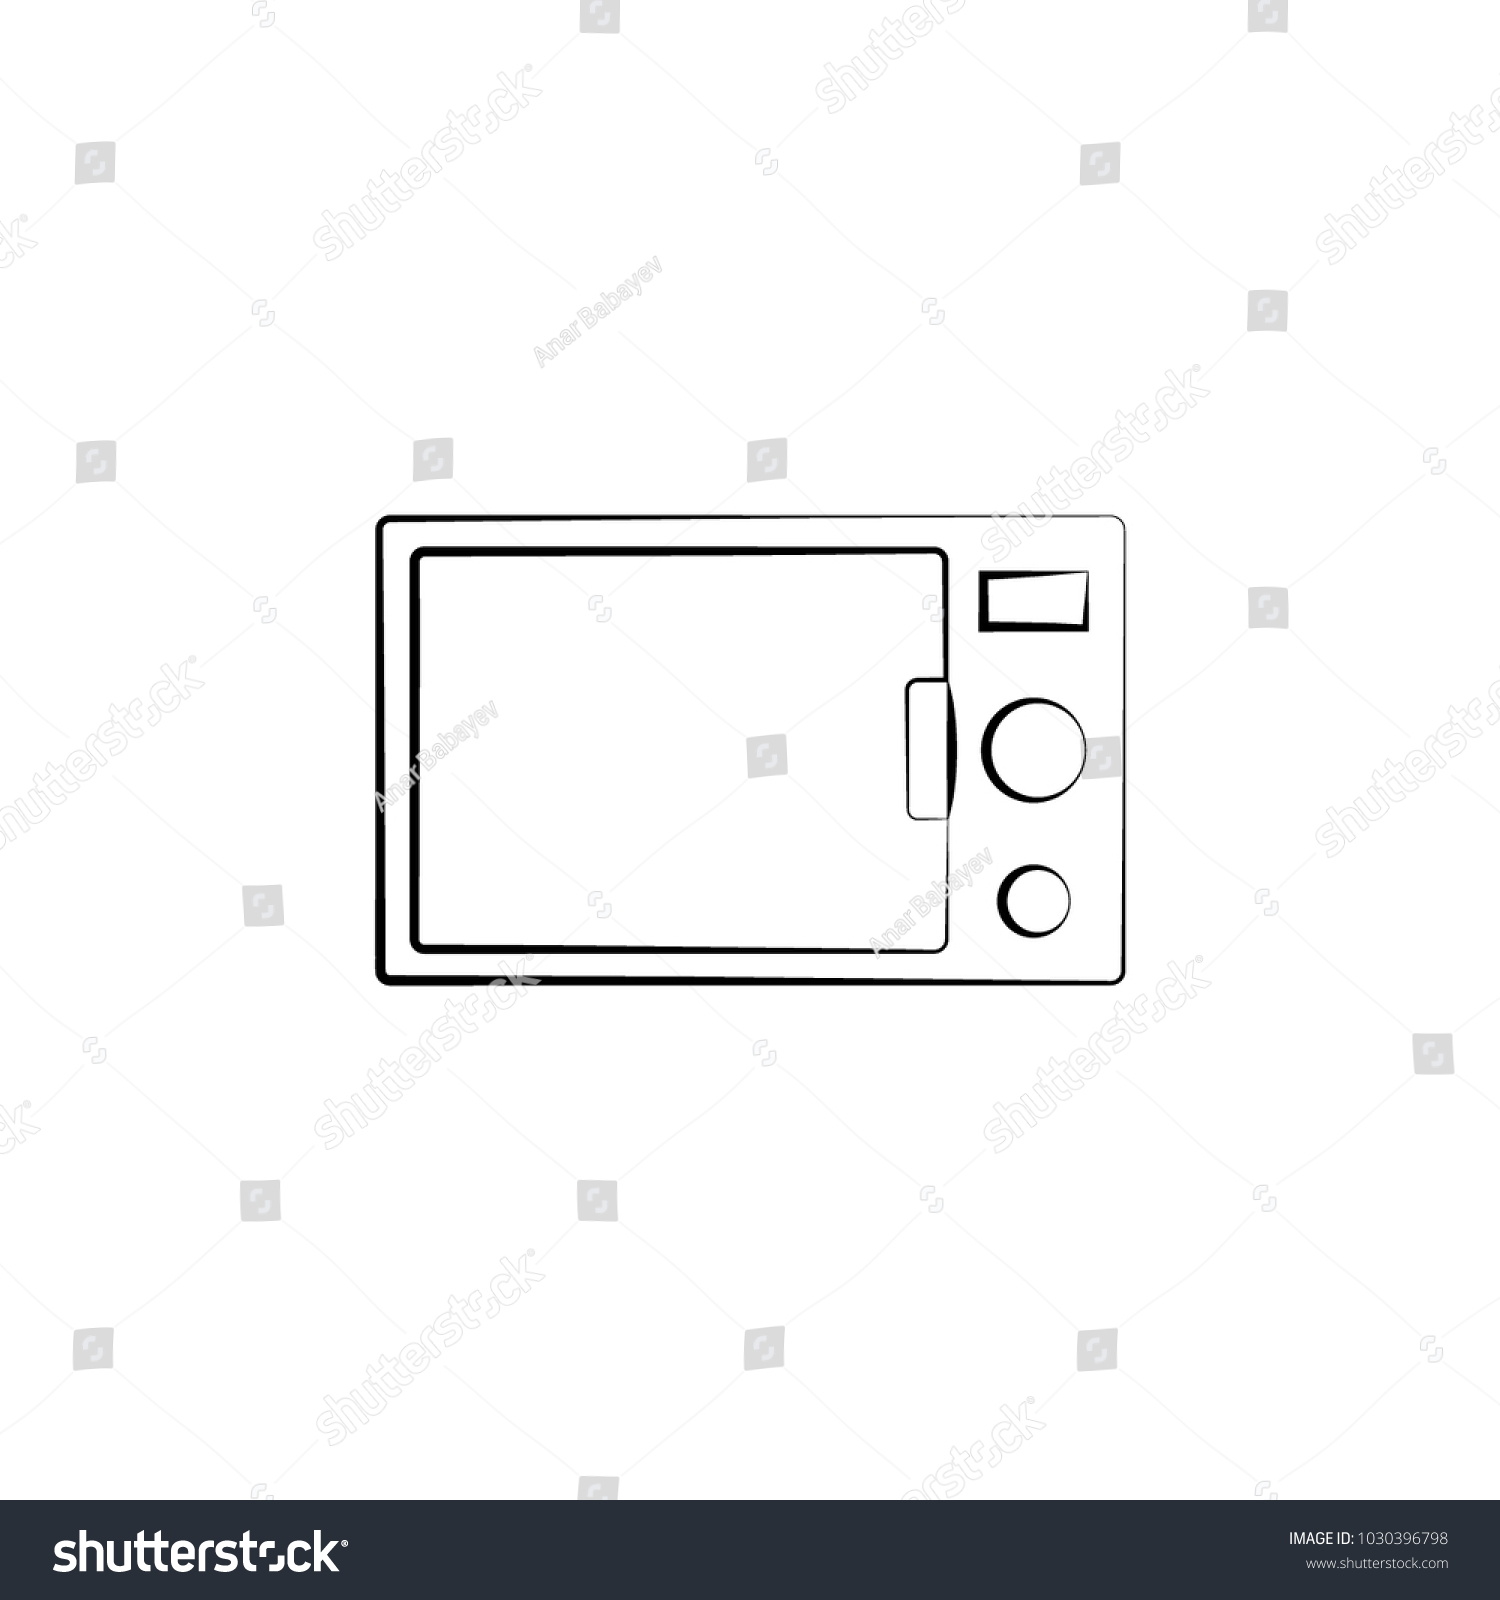 Microwave Oven Icon Element Electrical Devices Stock Vector ...